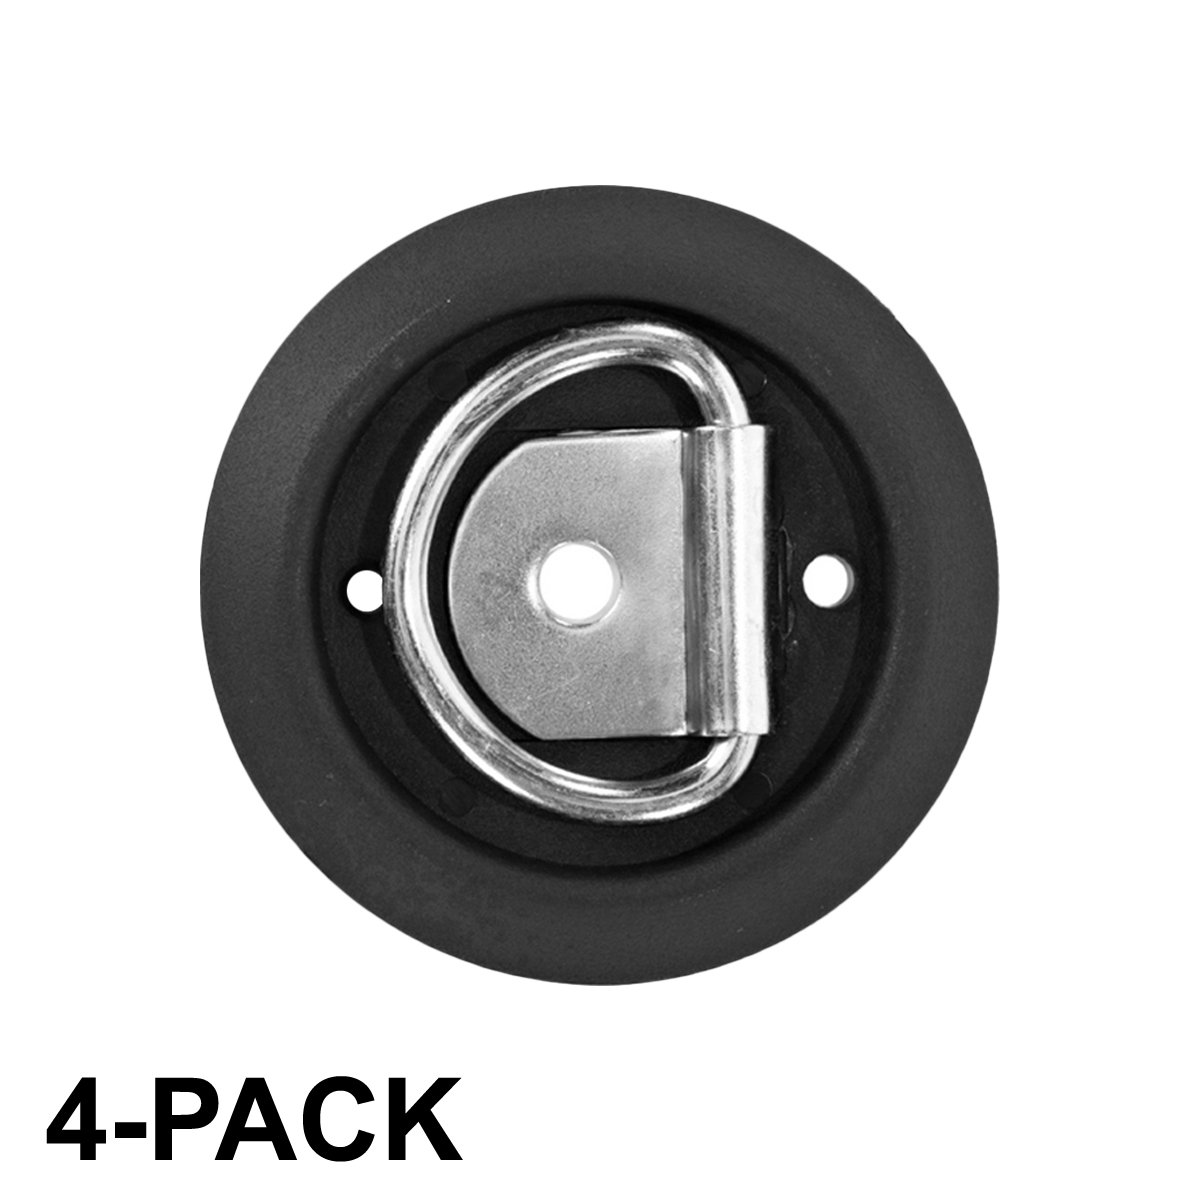 Surface Mount Anti-Rattle Tiedown Anchors 1,200 lb Capacity 1-Hole D-ring, 4-pack Sierra Pacific Engineering 44545-10-04